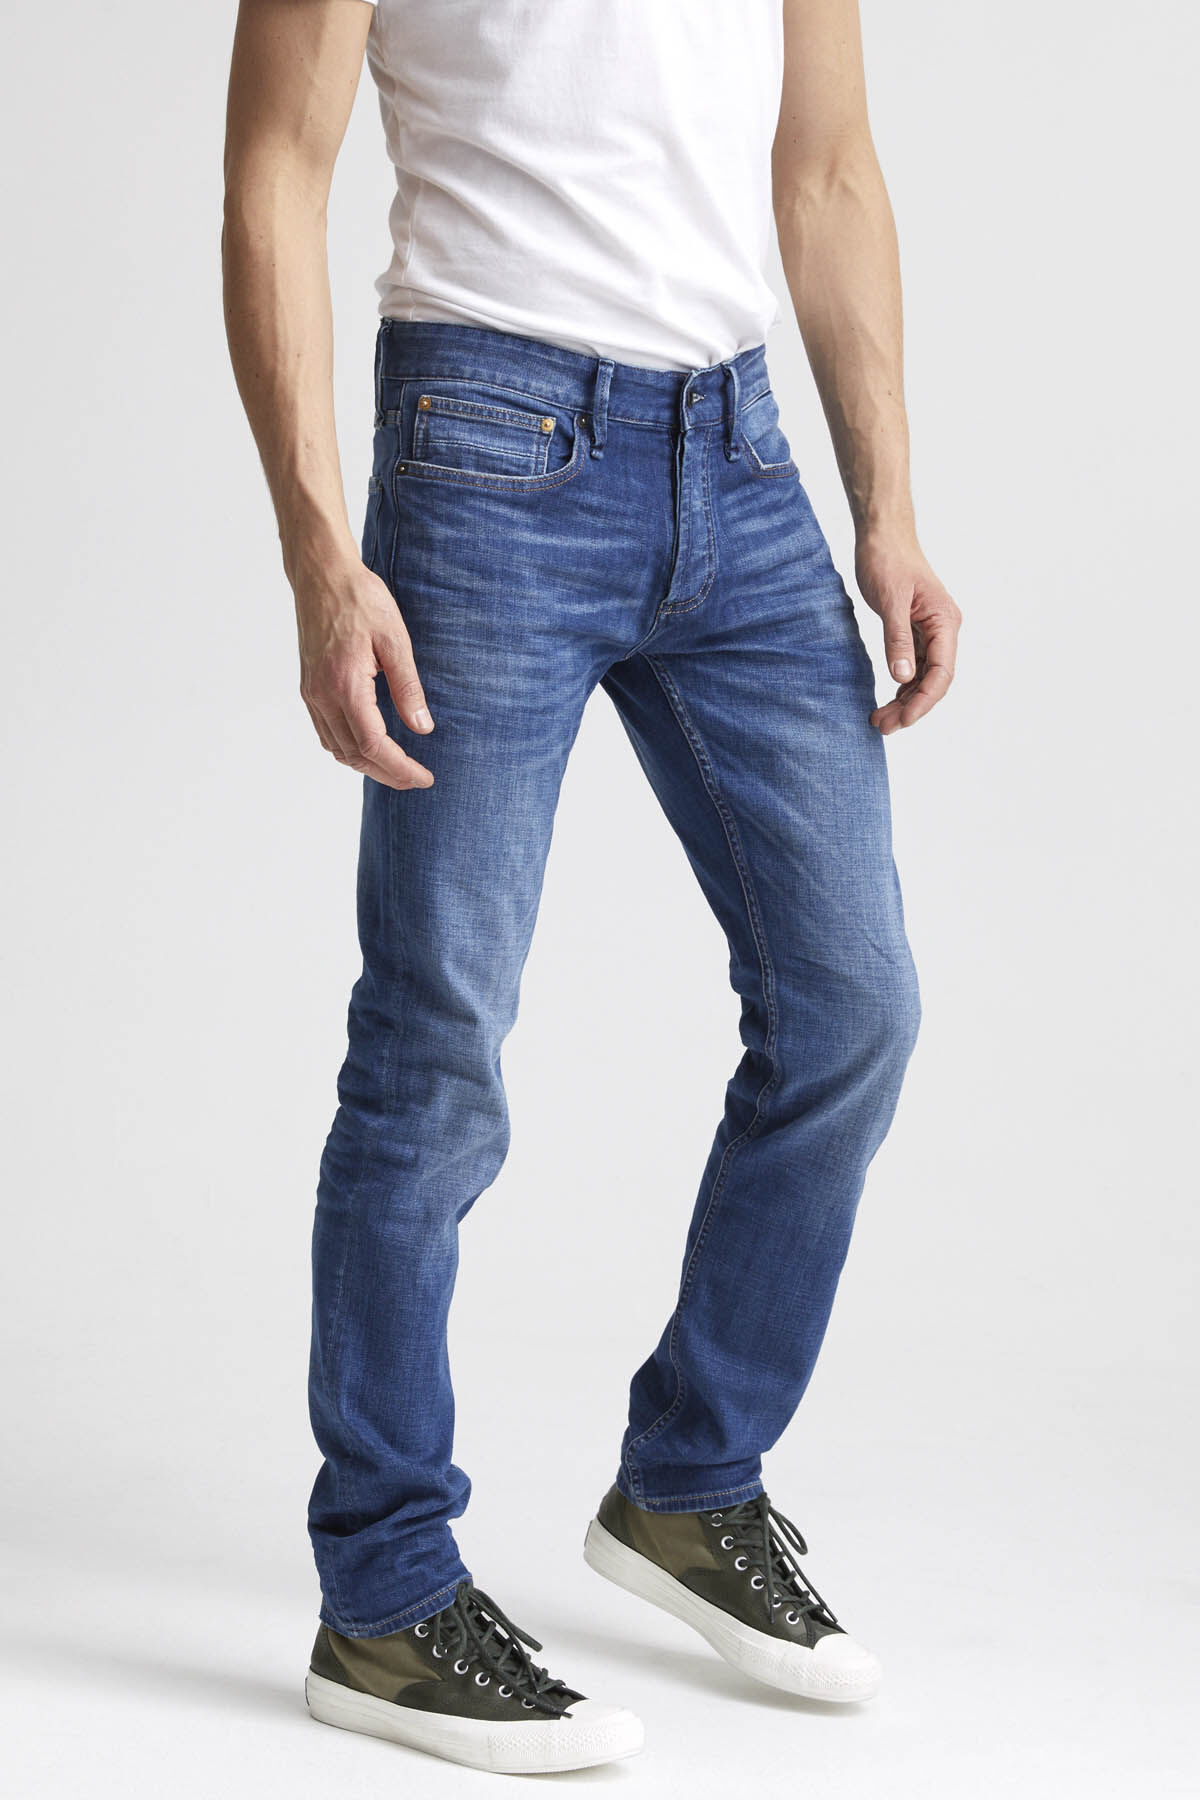 RAZOR Left-Hand Indigo Denim - Slim Fit